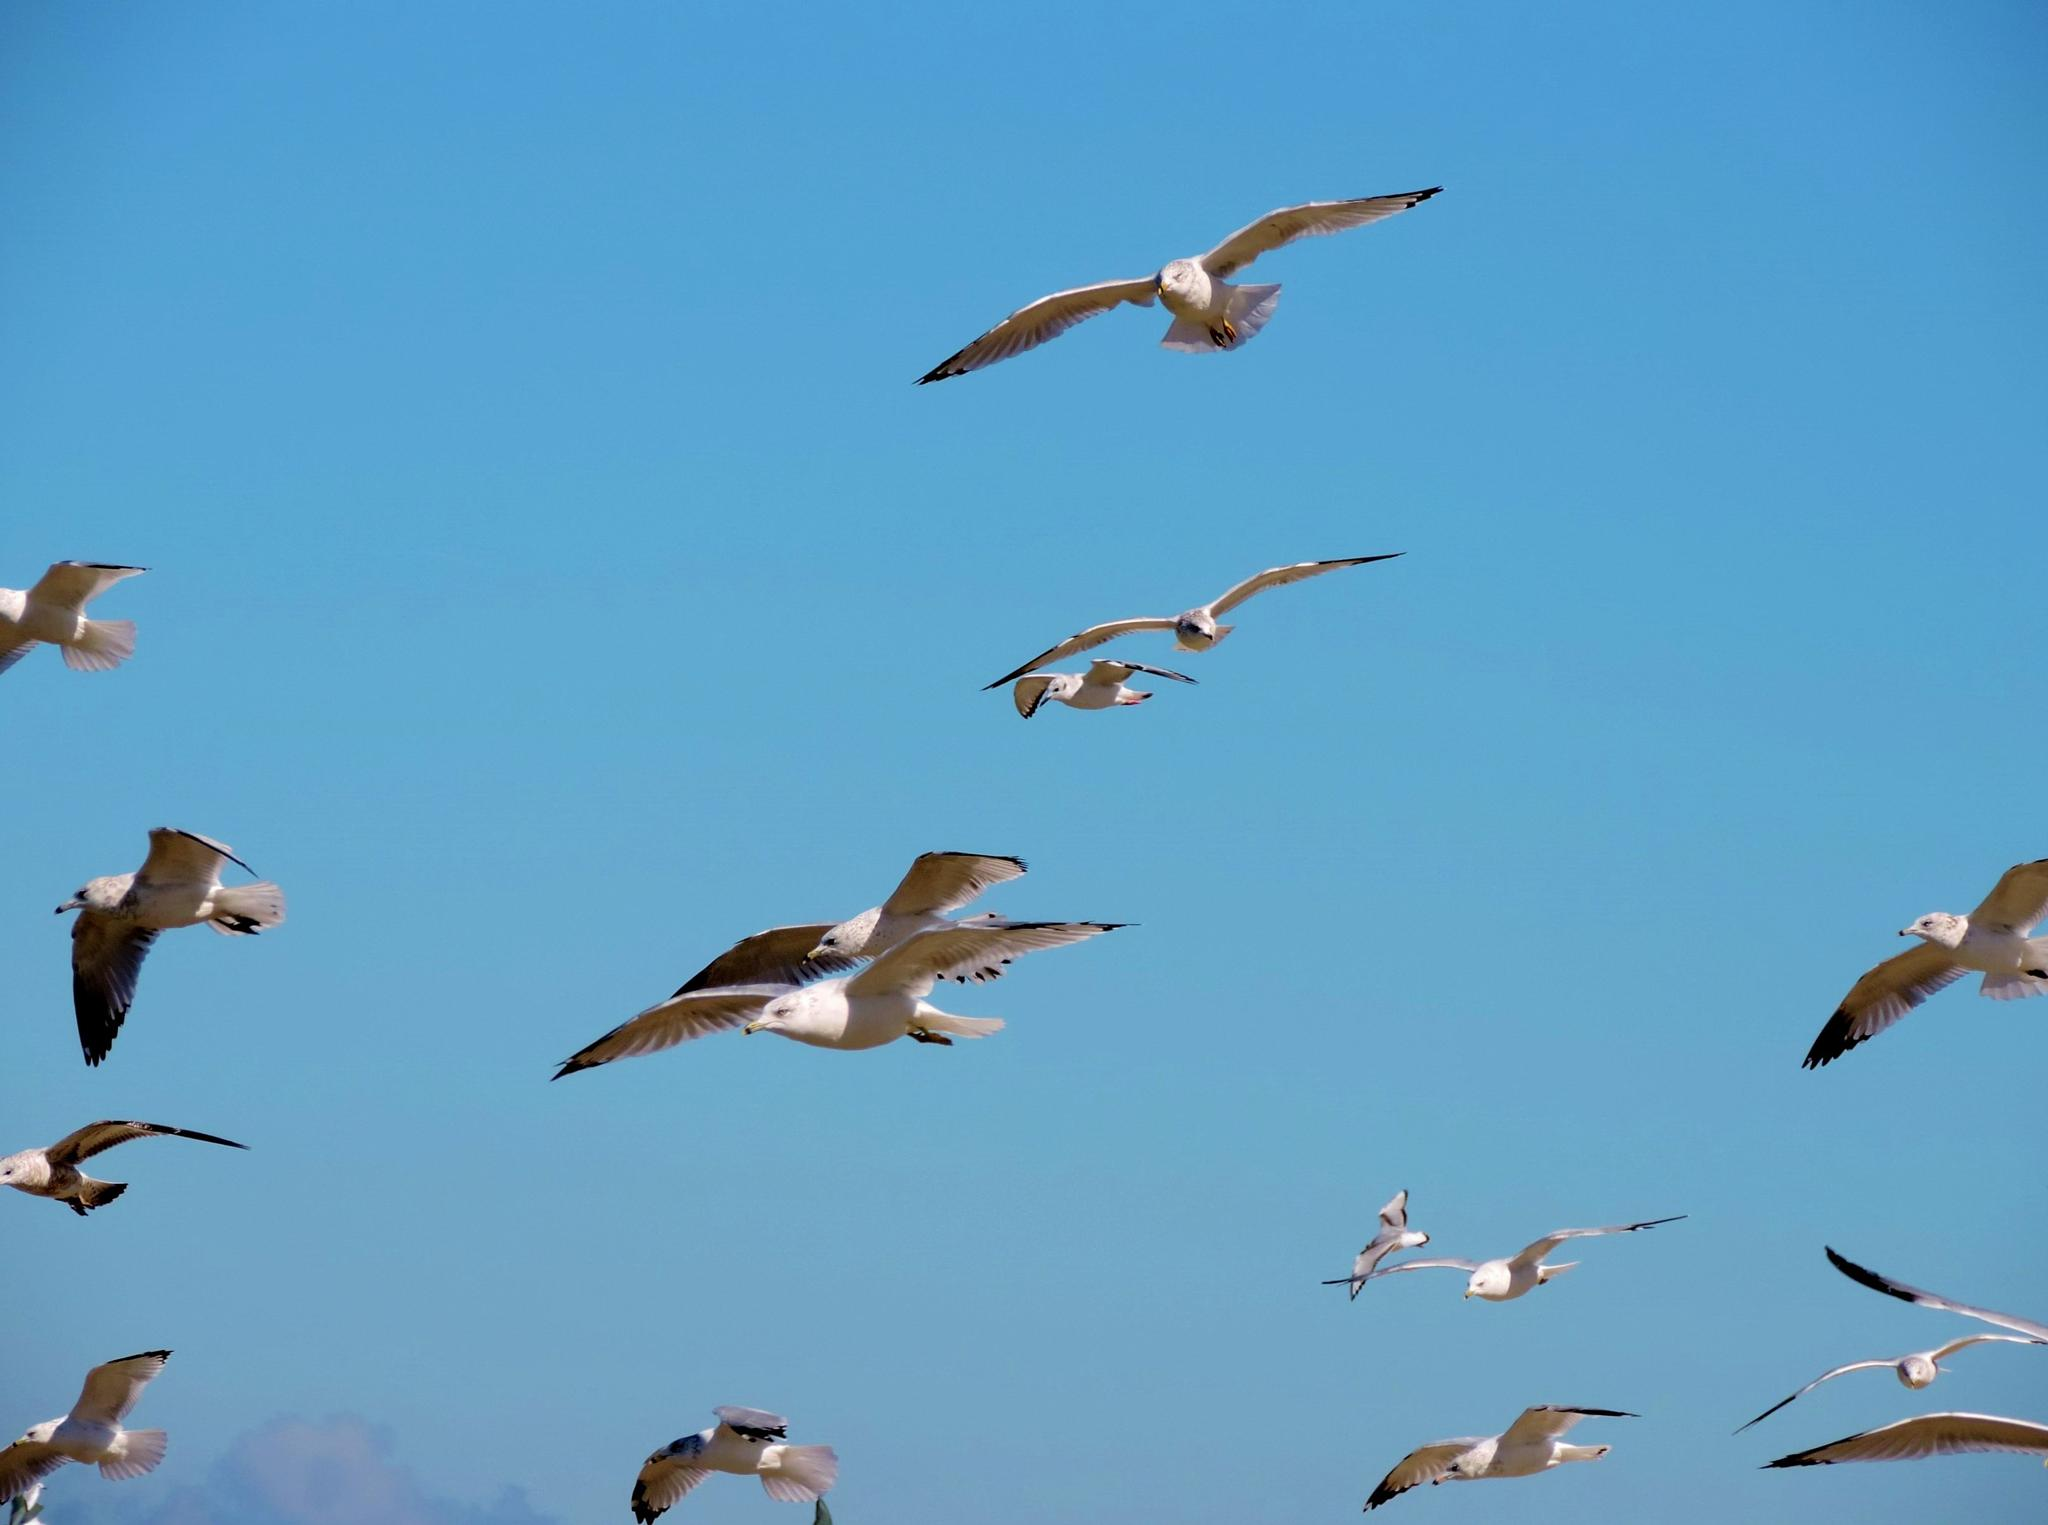 Seagulls in Flight by Darla Allburn